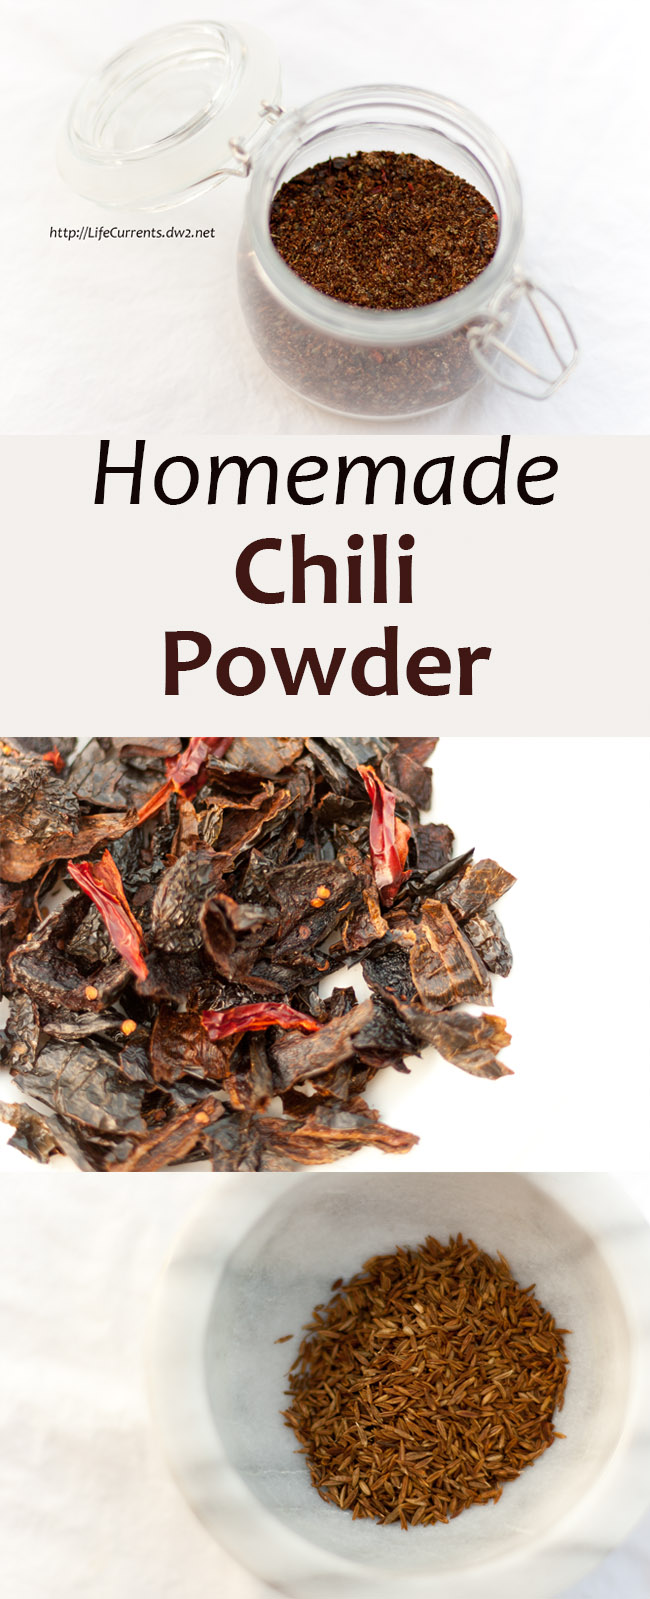 Homemade Chile Powder using dried chiles